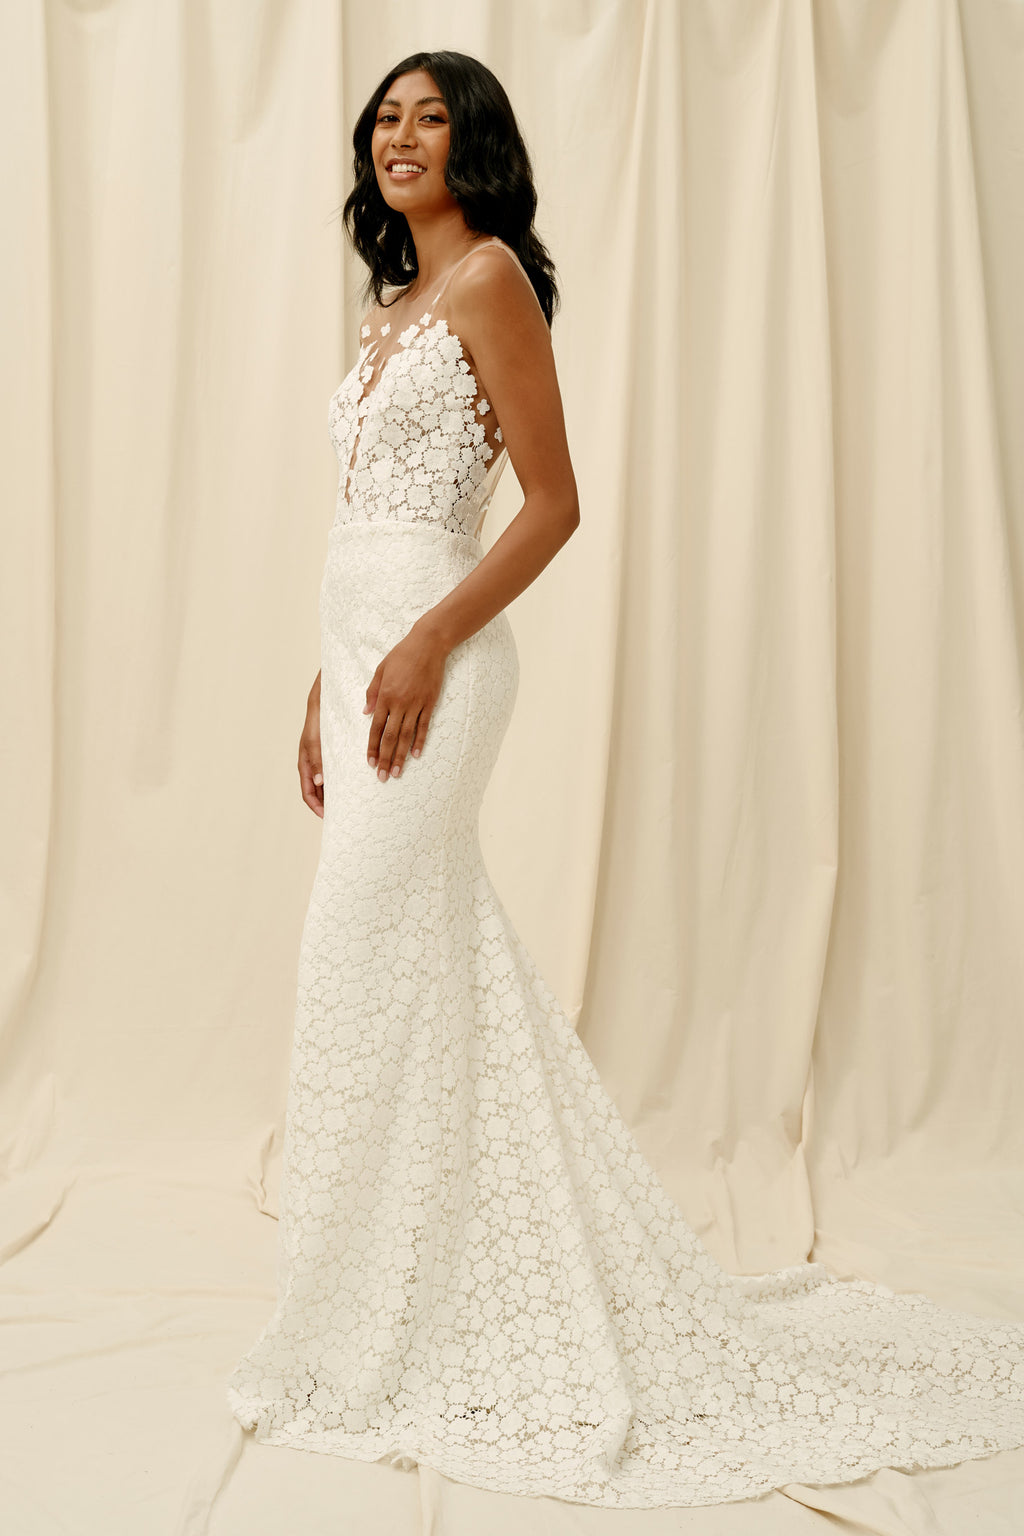 Fitted lace wedding dress with an illusion floating top